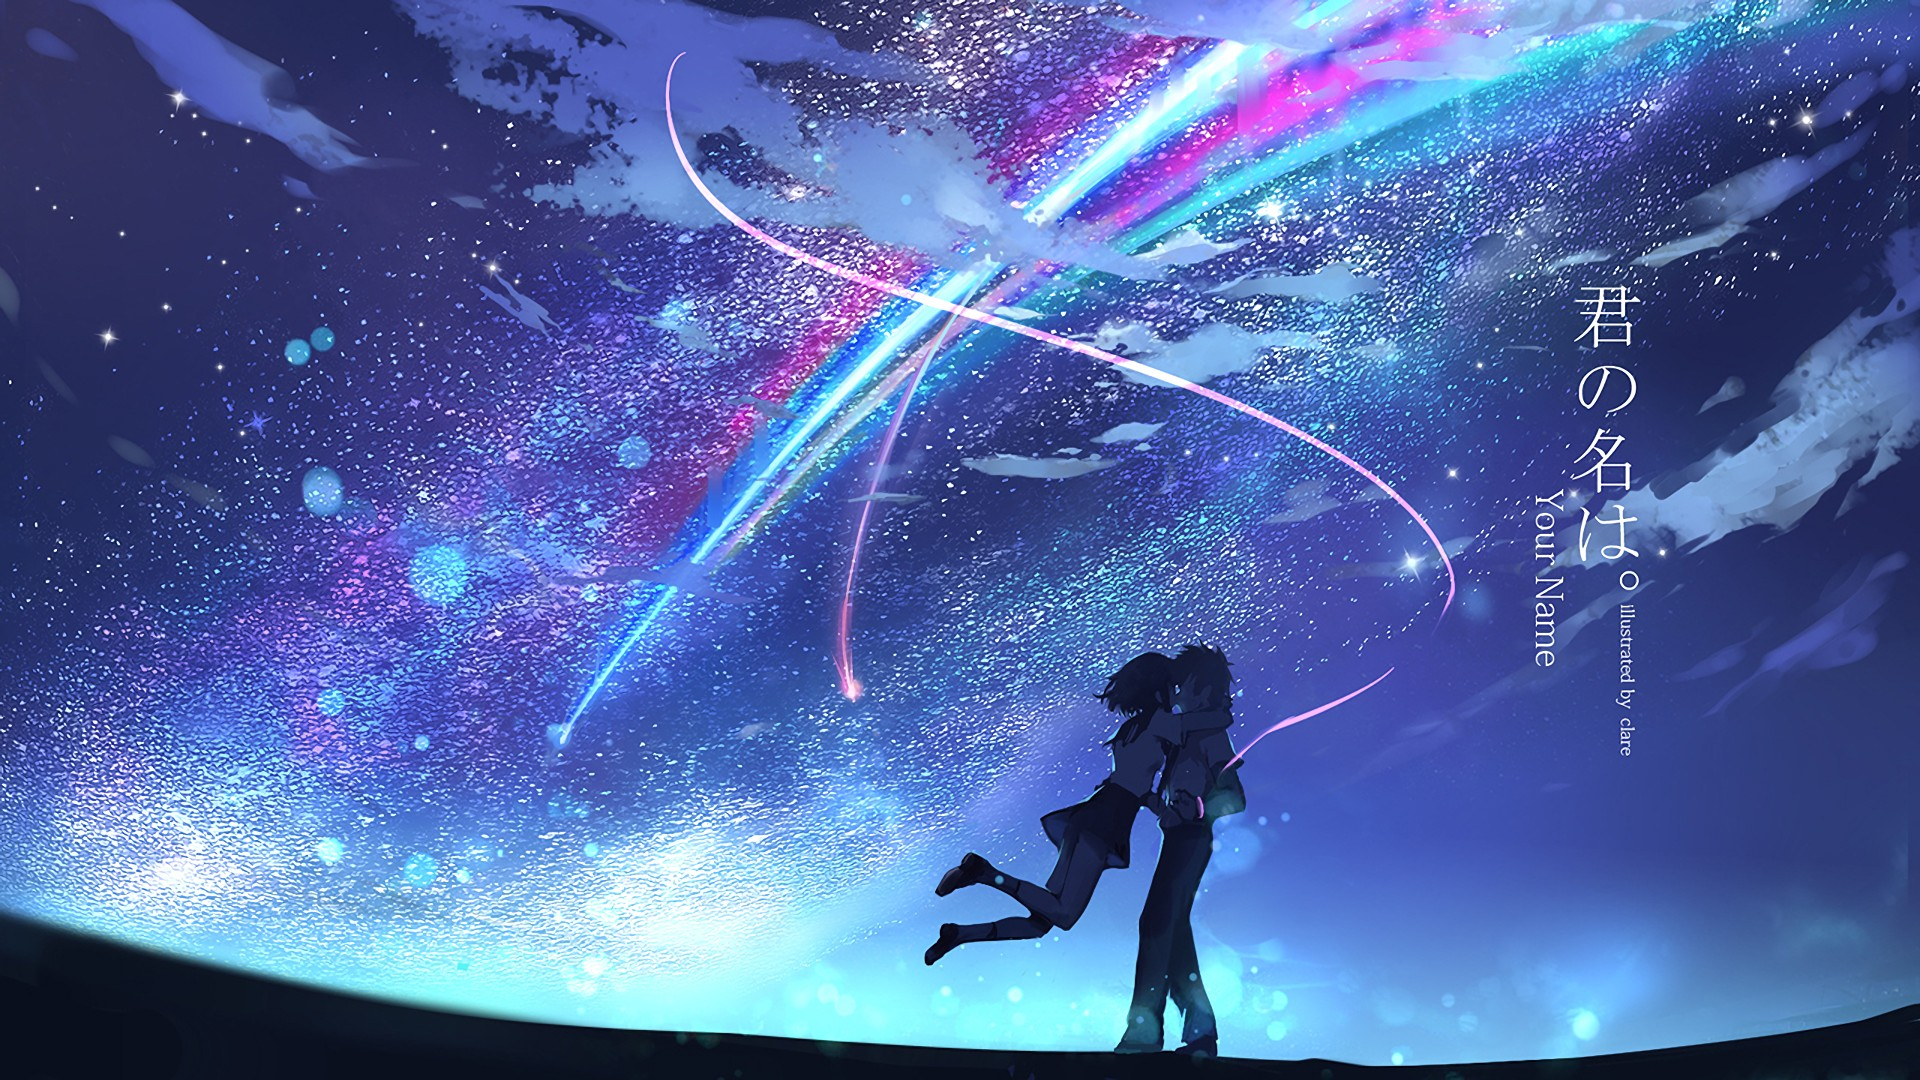 Kimi No Na Wa Wallpaper Download Free Stunning High Resolution